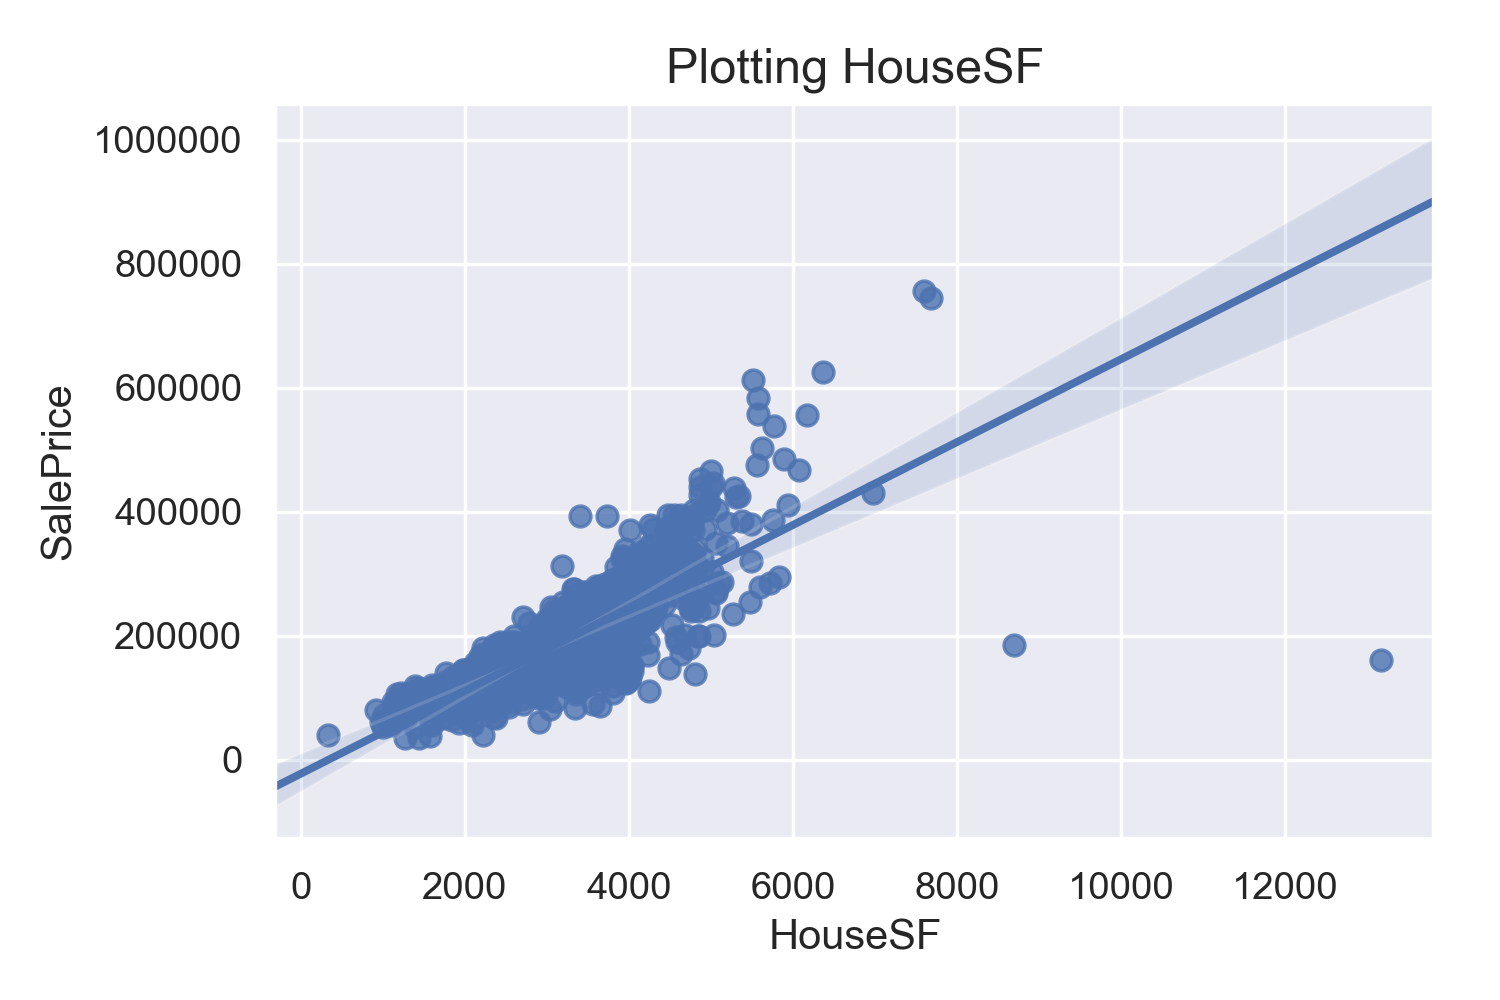 Housing Price Predictions Using Advanced Regression